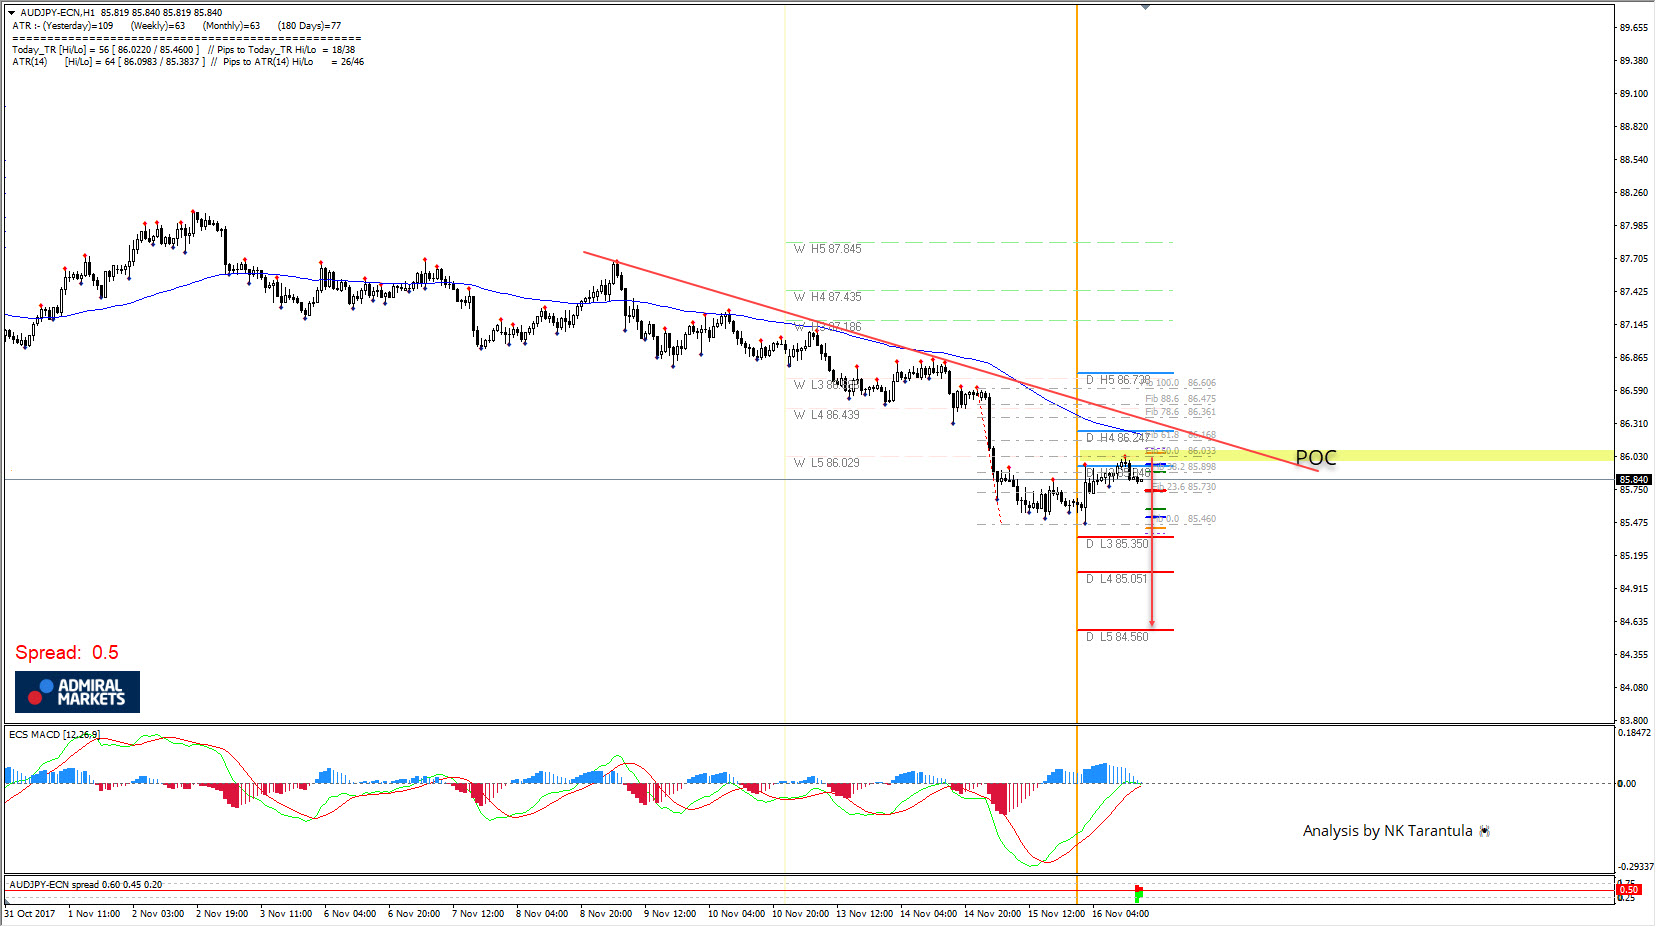 AUD/JPY Bearish Zig Zag Pattern Aiming for 85.35 if 86.25 holds